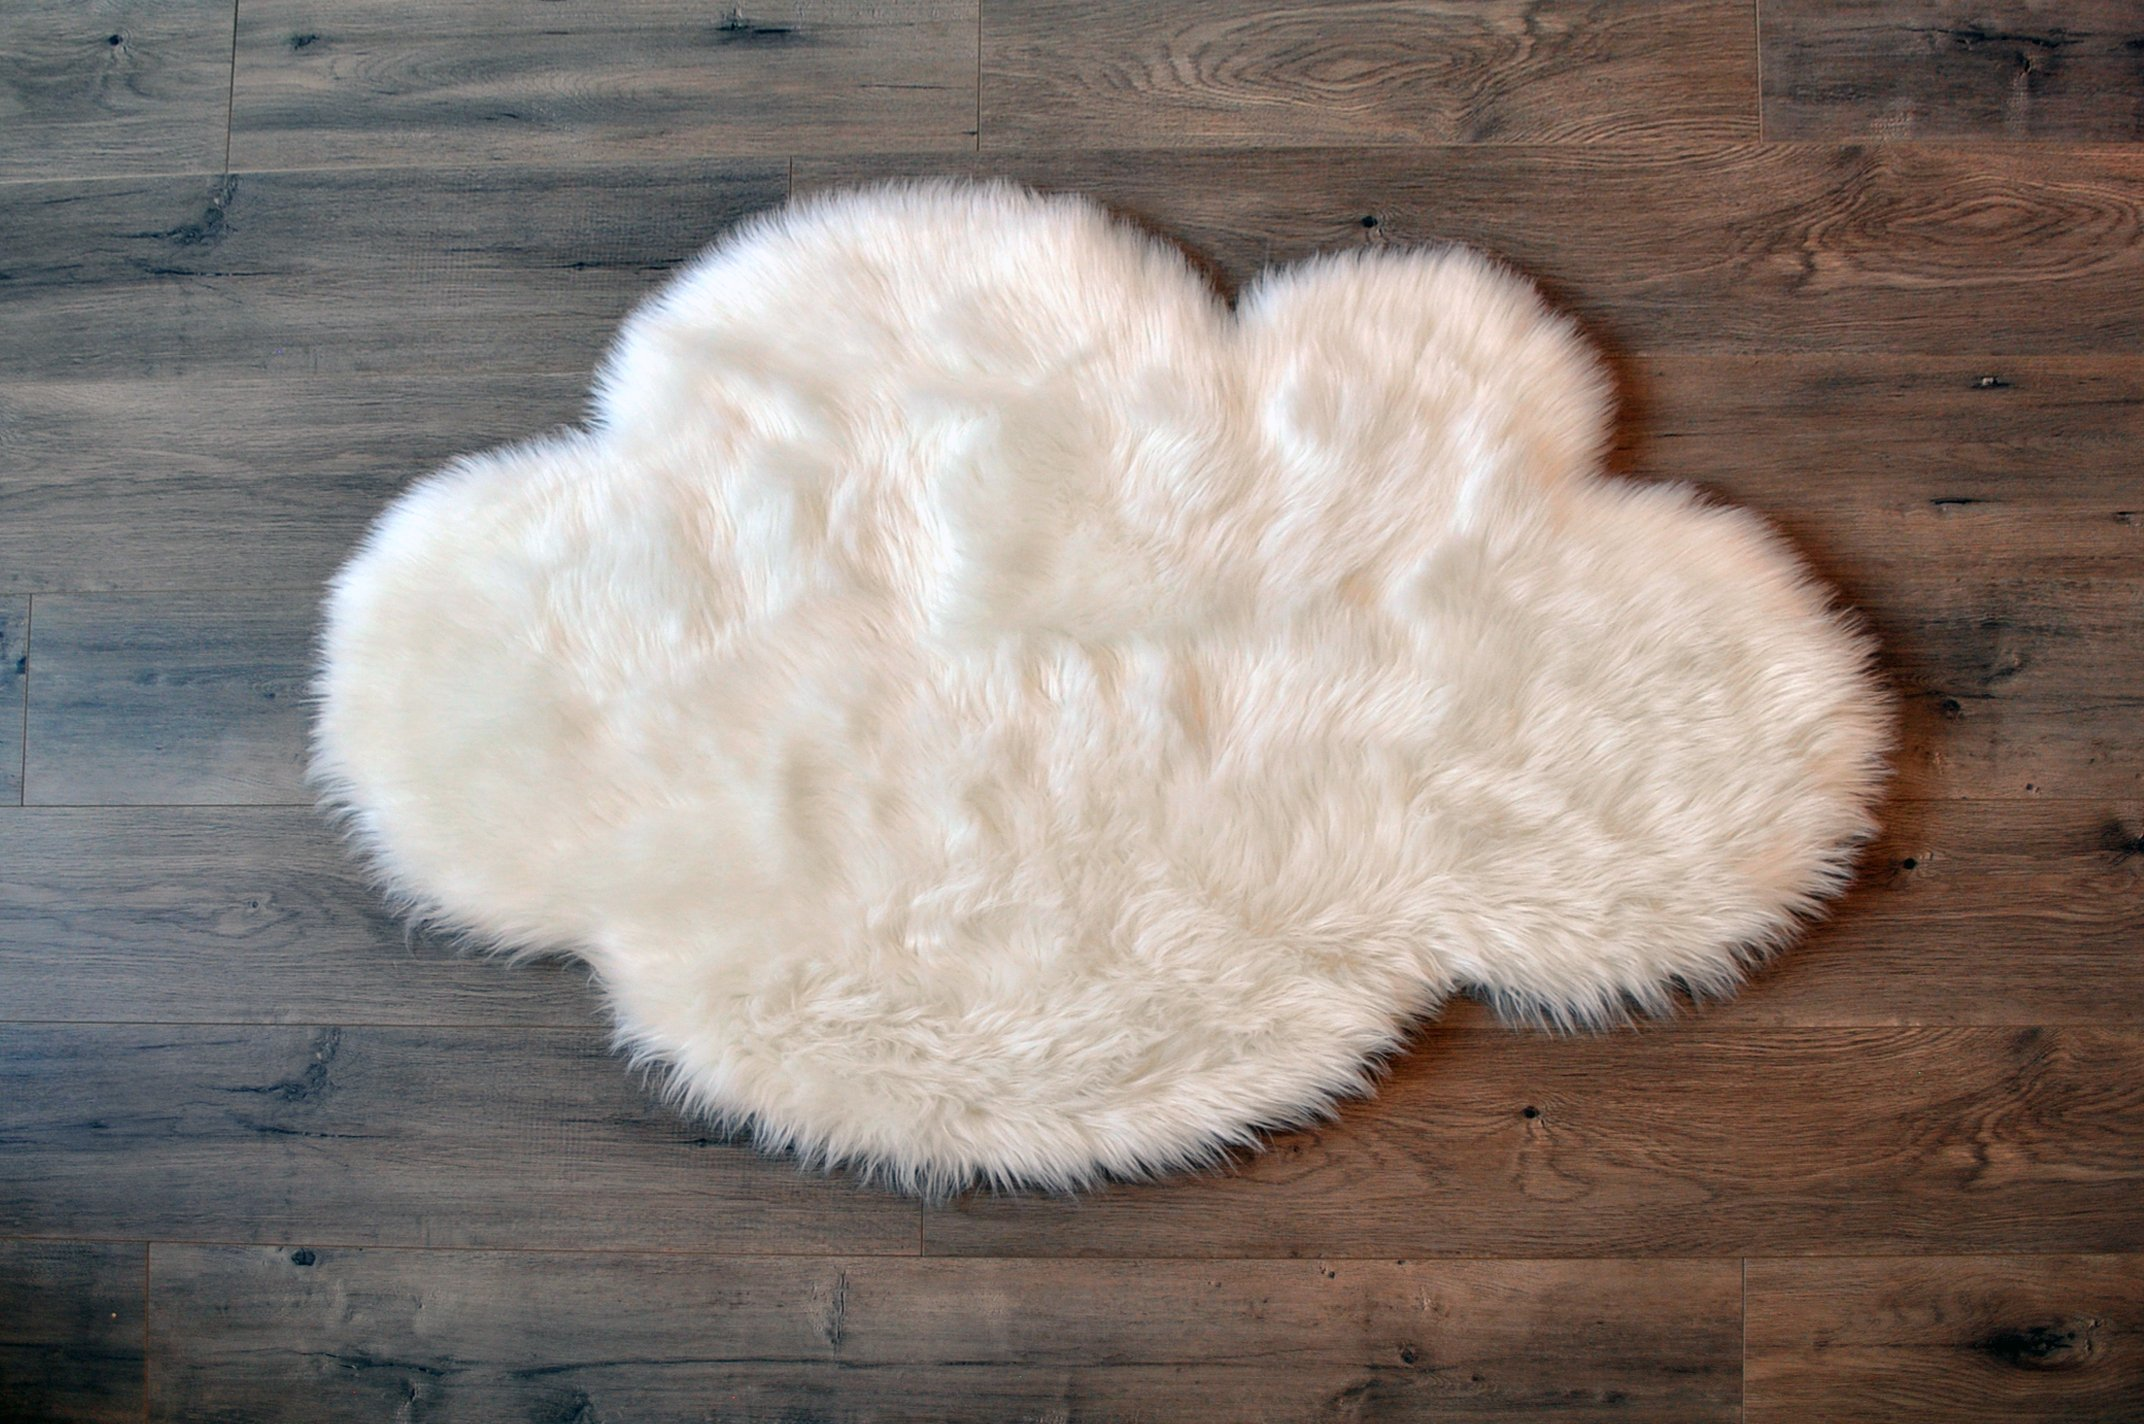 Machine Washable Faux Sheepskin White Cloud Area Rug 32'' x 44'' - Soft and Silky - Perfect for Baby's Room, Nursery, playroom (2' 7'' x 3' 7'') - White Cloud by kroma Carpets